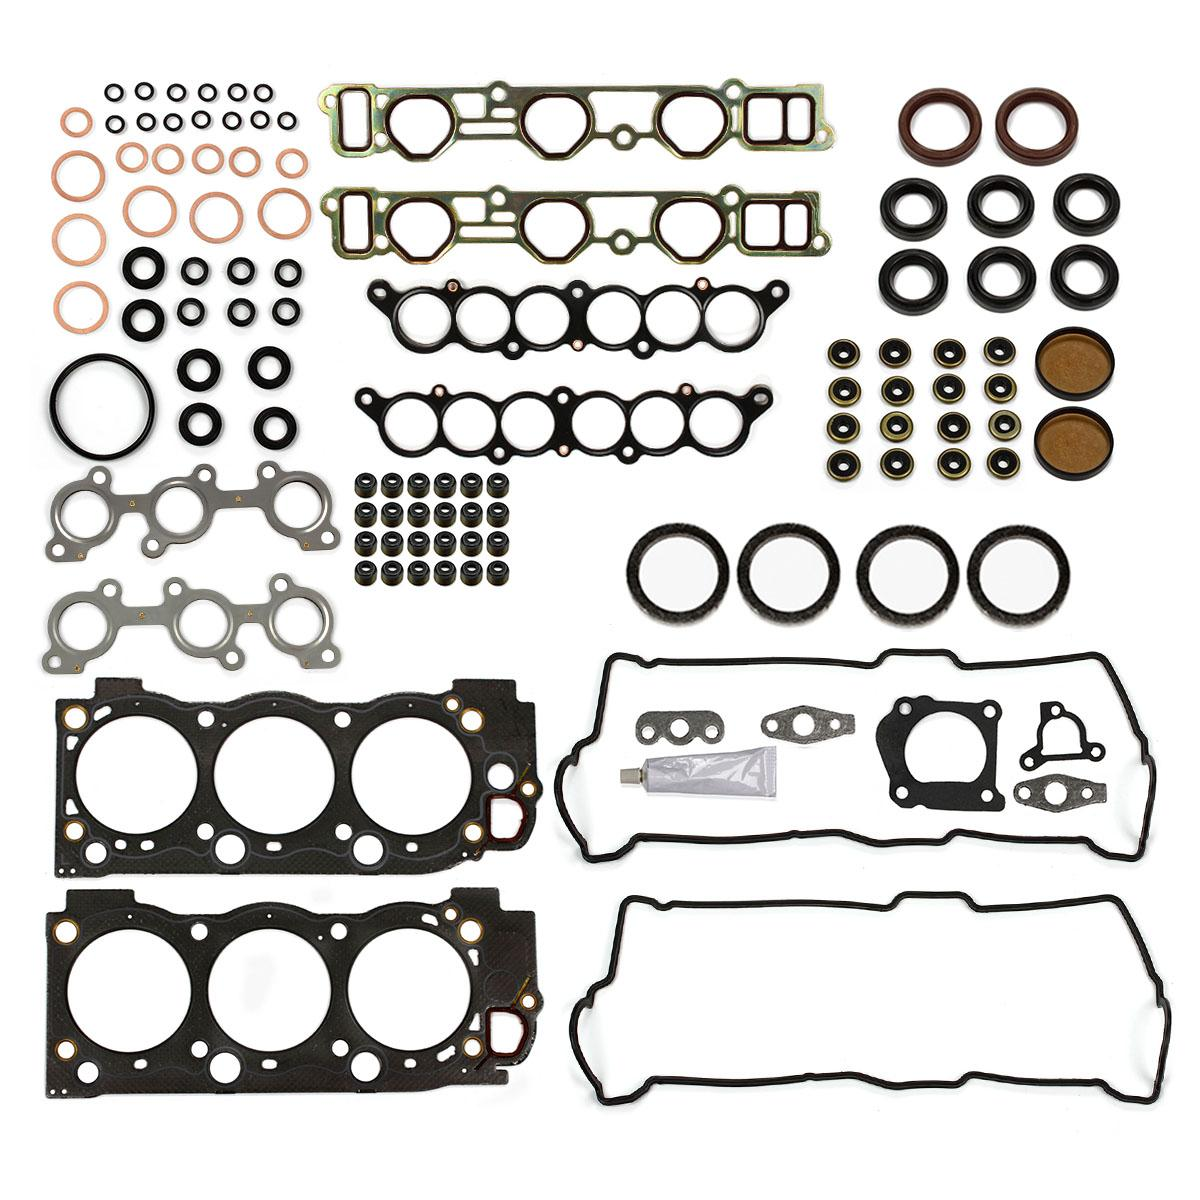 Toyota Tundra 2000 2004 Engine Cylinder Head Gasket: For 95-04 Toyota 4Runner Tacoma Tundra T100 3.4 Cylinder